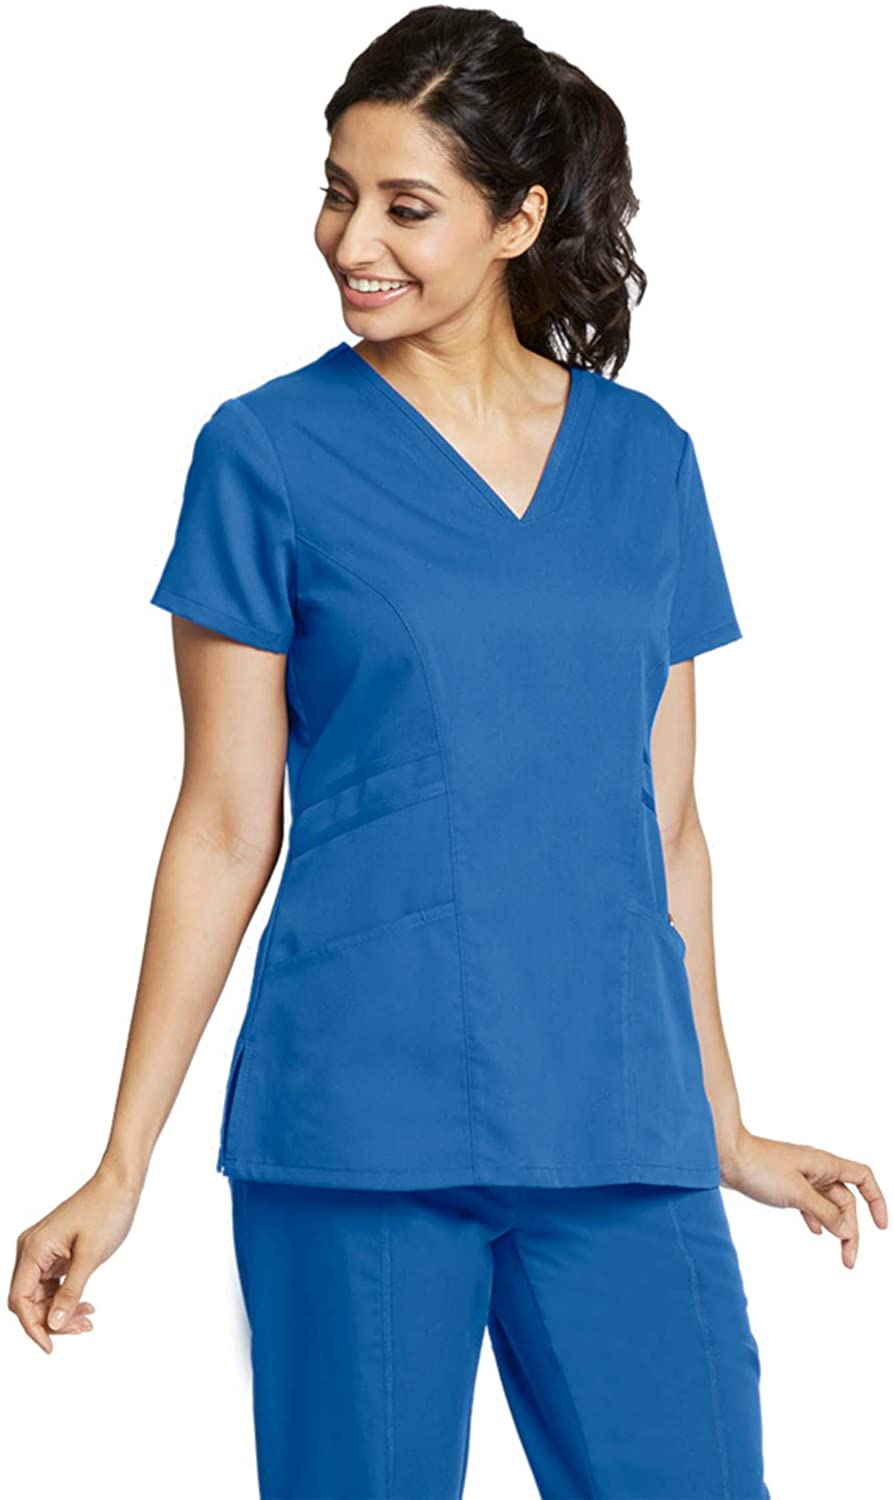 Greys Anatomy 41452 Womens V-Neck Scrub Top New Royal XS